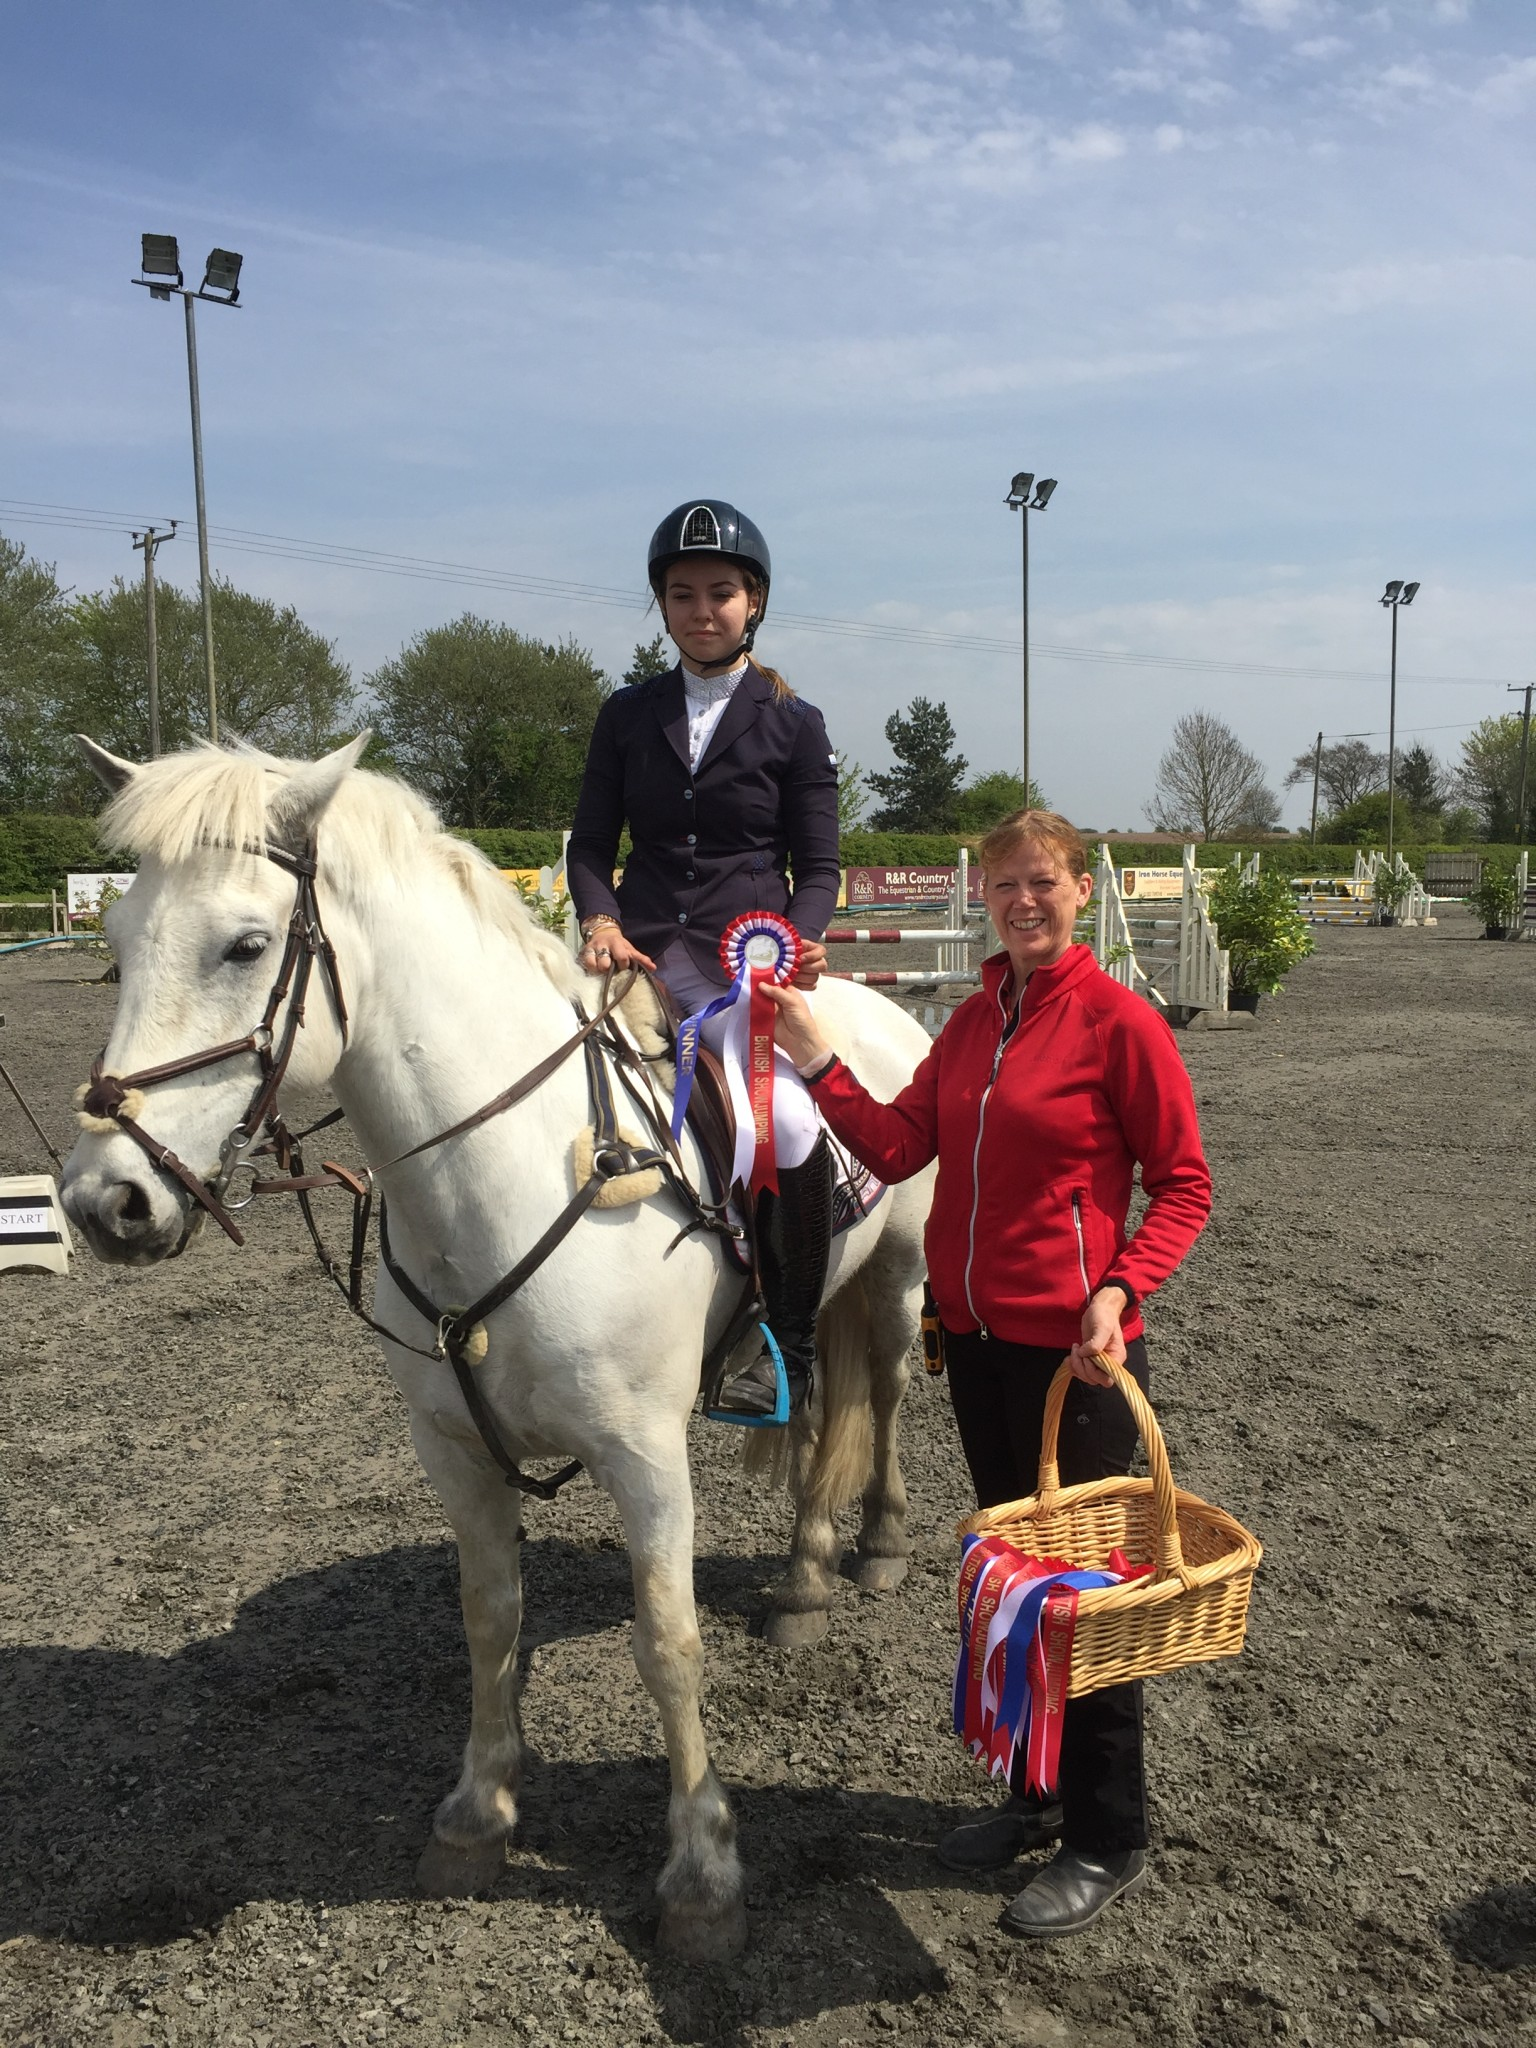 Georgie Marriott Murthwaite Blue Boy Port Royal Equestrian Centre - Lincolnshire's Georgie Marriott Wins First Haygain Pony Senior Discovery Second Round at Port Royal Equestrian Centre